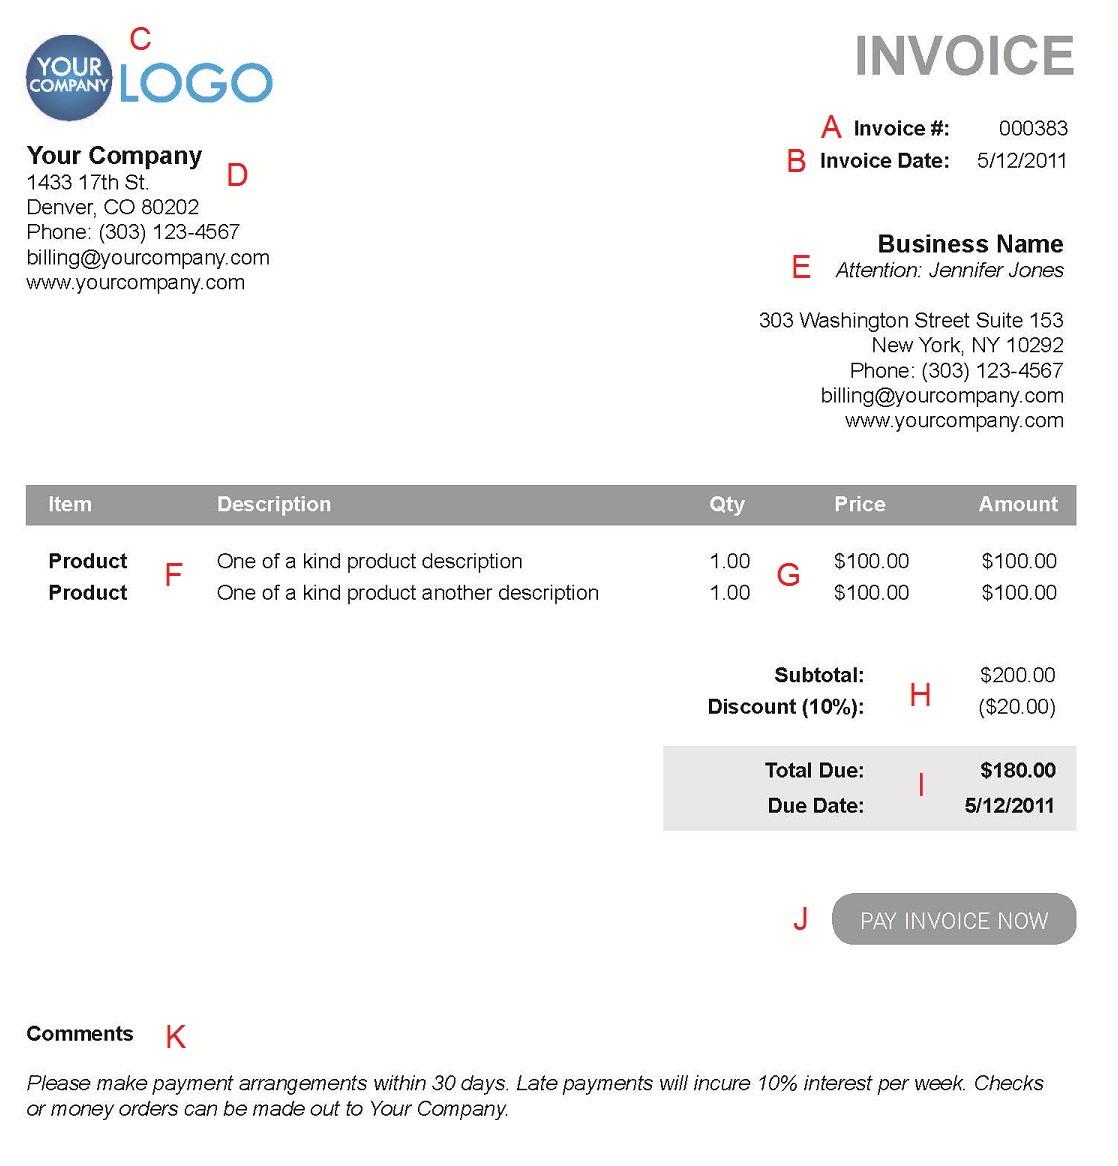 Theologygeekblogus  Pleasant The  Different Sections Of An Electronic Payment Invoice With Great A  With Cute Accounts Payable Invoice Processing Also Accounts Payable Invoice In Addition Consulting Invoice Sample And Google Template Invoice As Well As Invoices Examples Additionally Invoicing Software Free From Paysimplecom With Theologygeekblogus  Great The  Different Sections Of An Electronic Payment Invoice With Cute A  And Pleasant Accounts Payable Invoice Processing Also Accounts Payable Invoice In Addition Consulting Invoice Sample From Paysimplecom